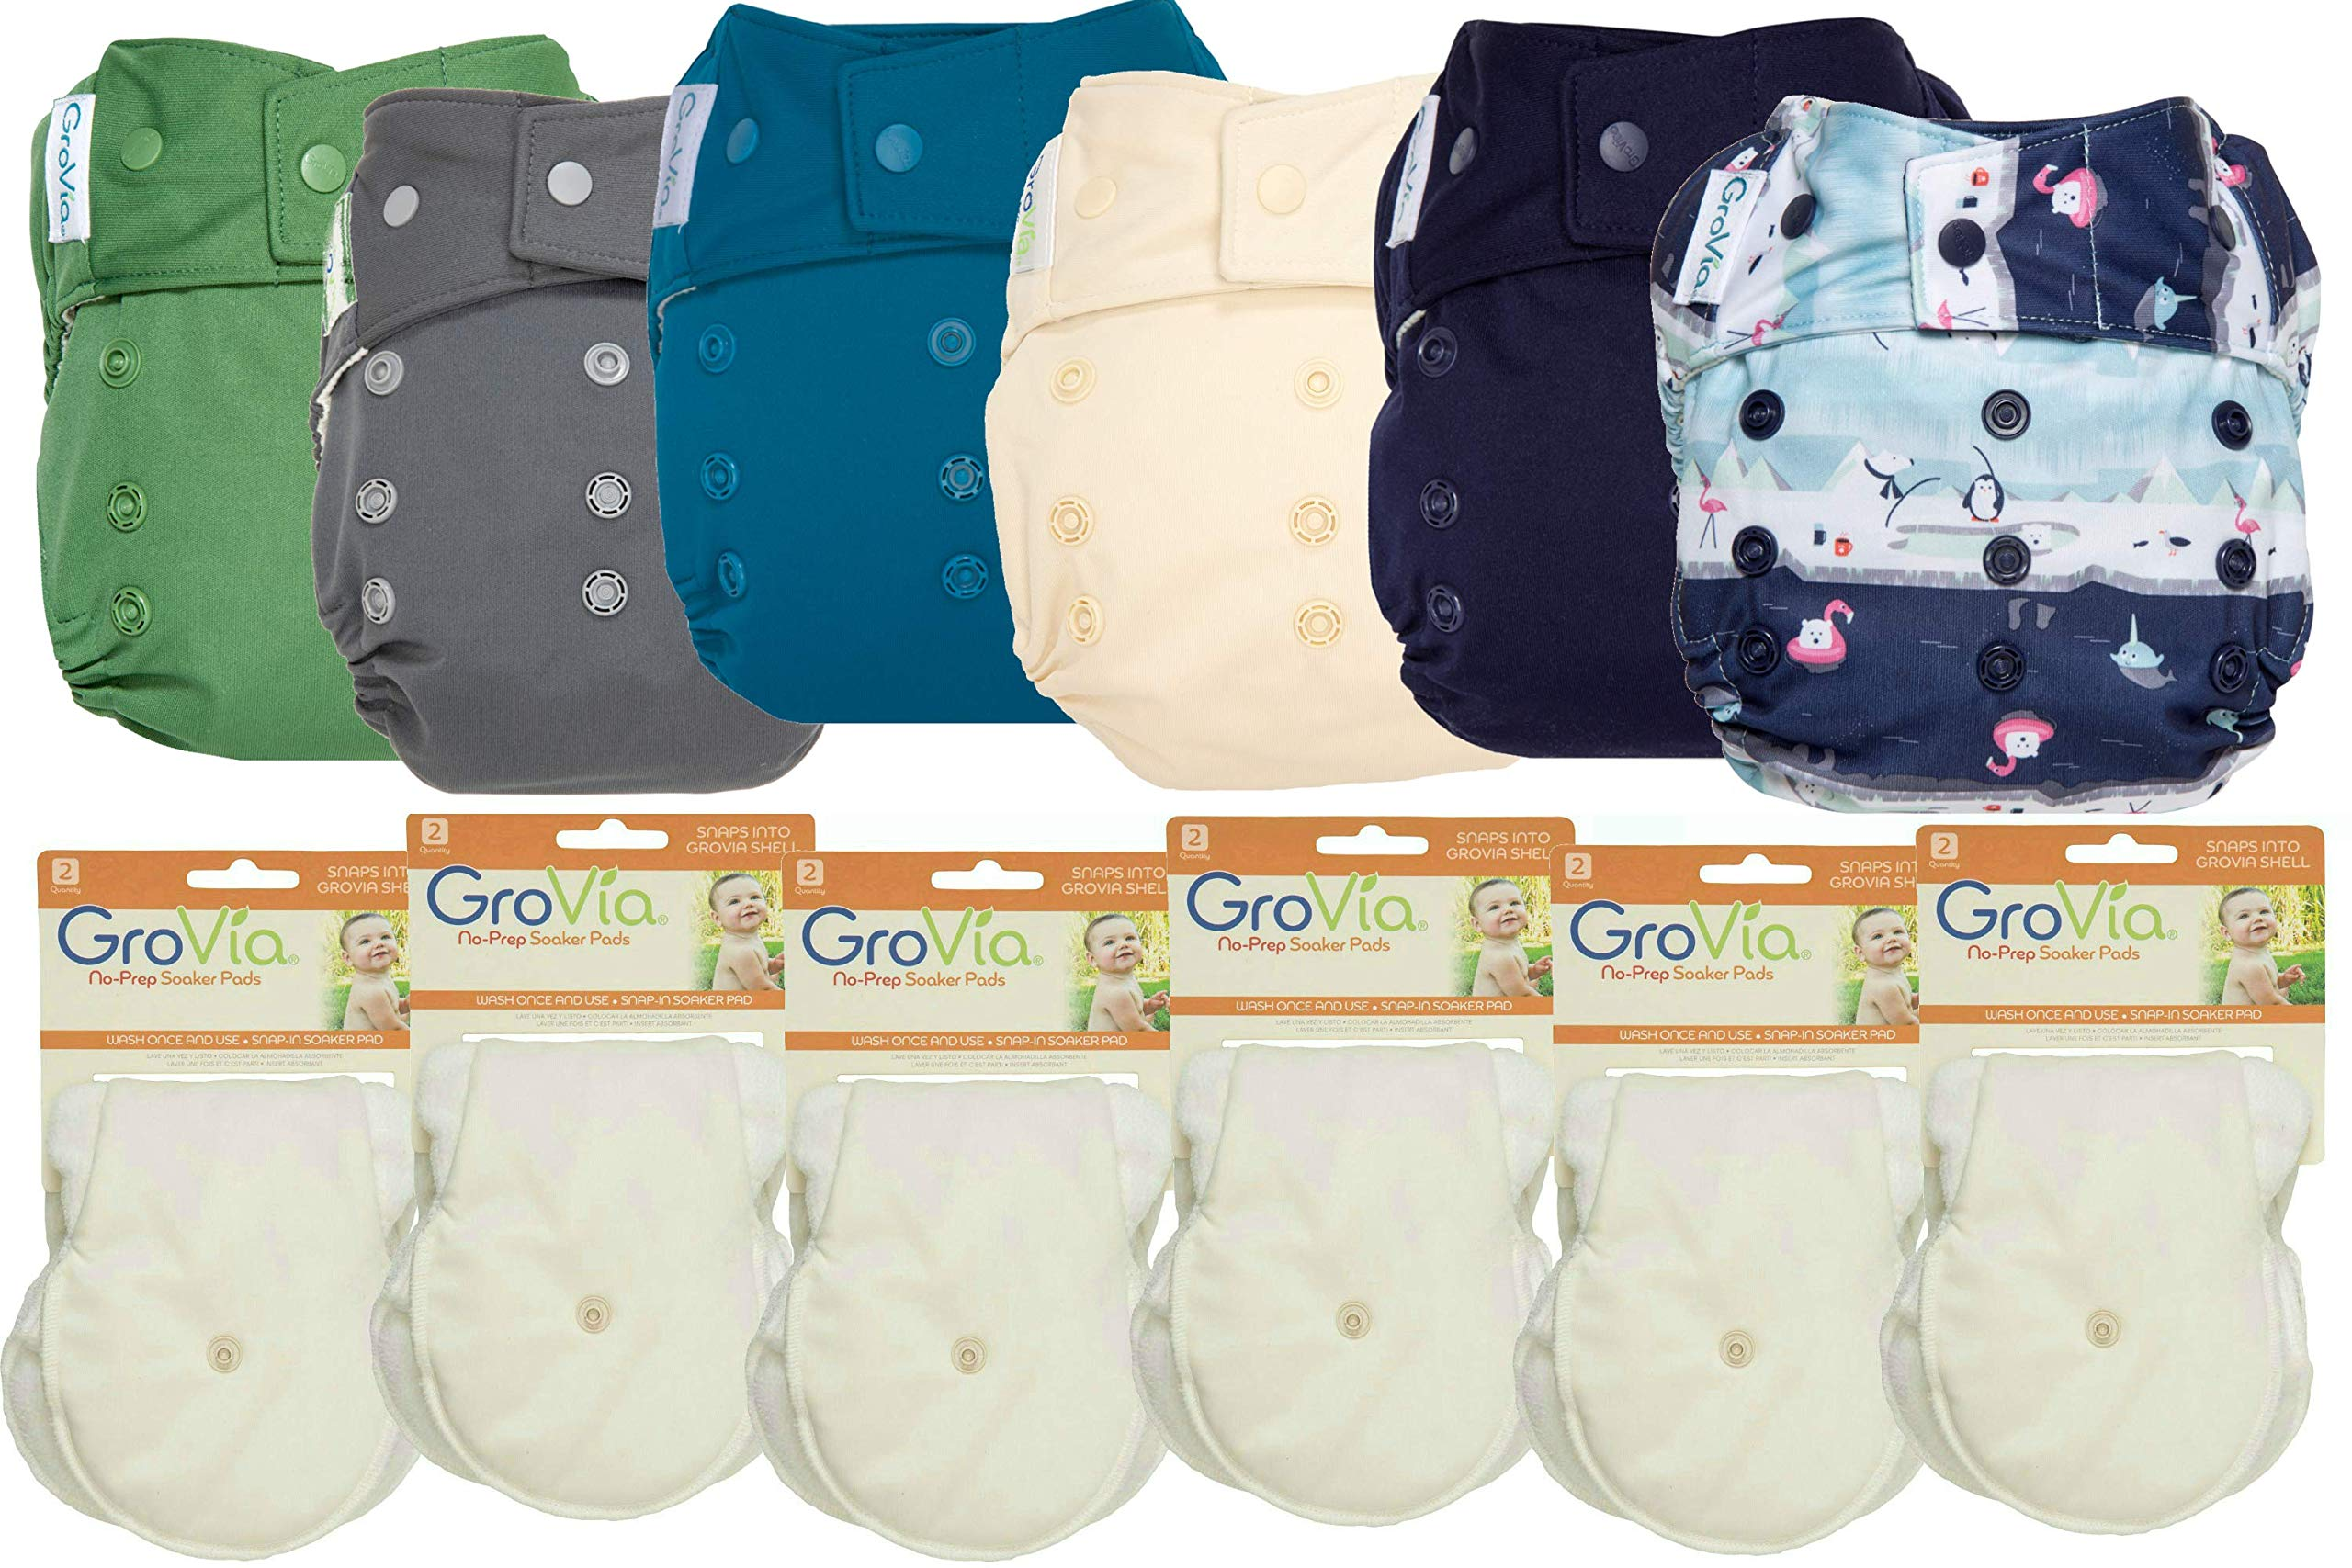 GroVia Hybrid Part Time Package: 6 Shells + 12 No Prep Soaker Pads (Color Mix 5 - Snap)